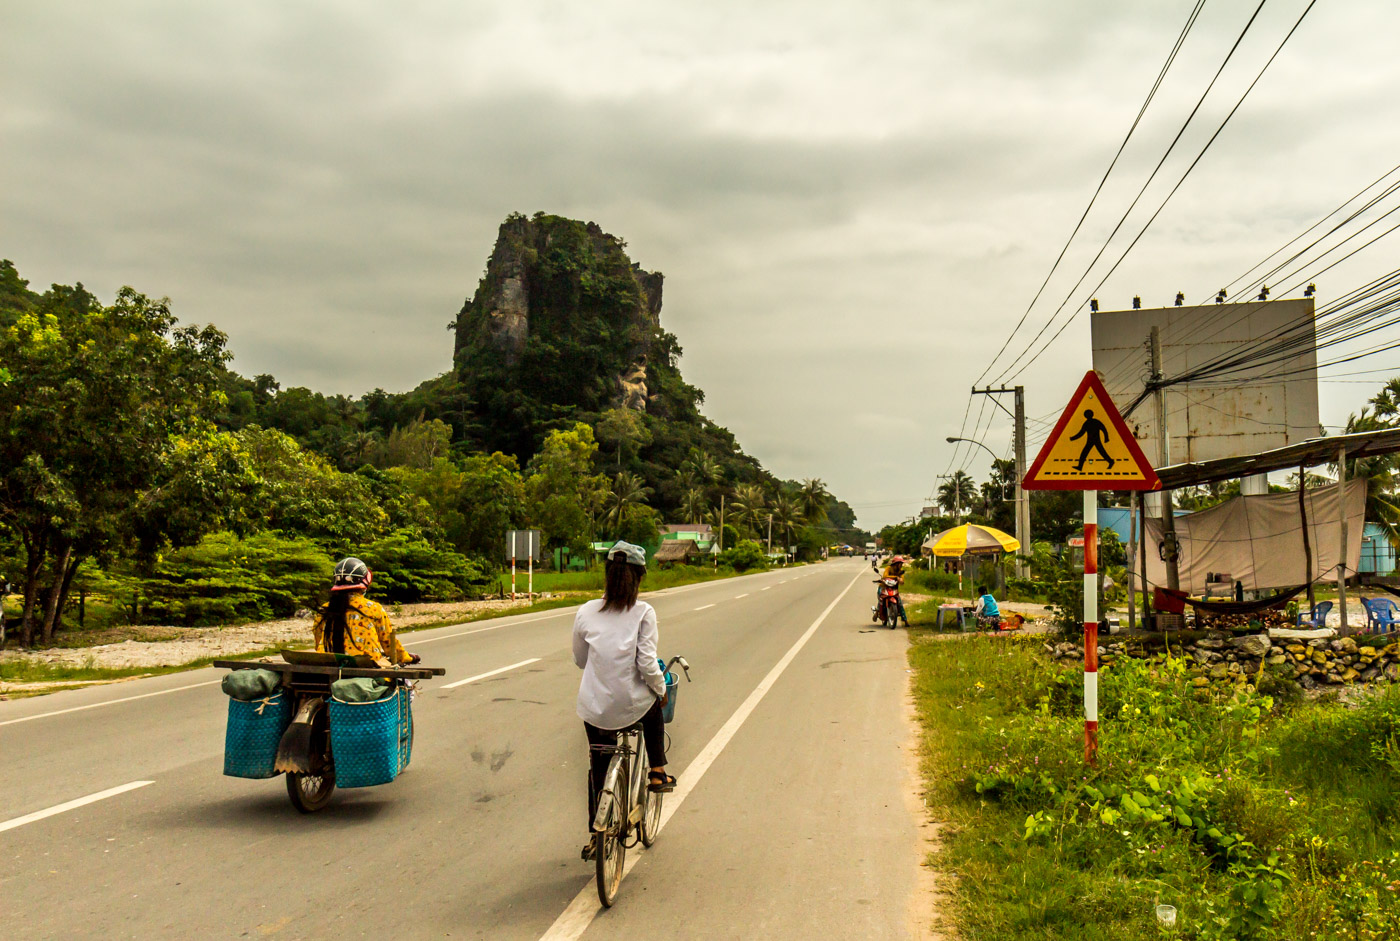 The short ride to Hà Tiên was scenic.